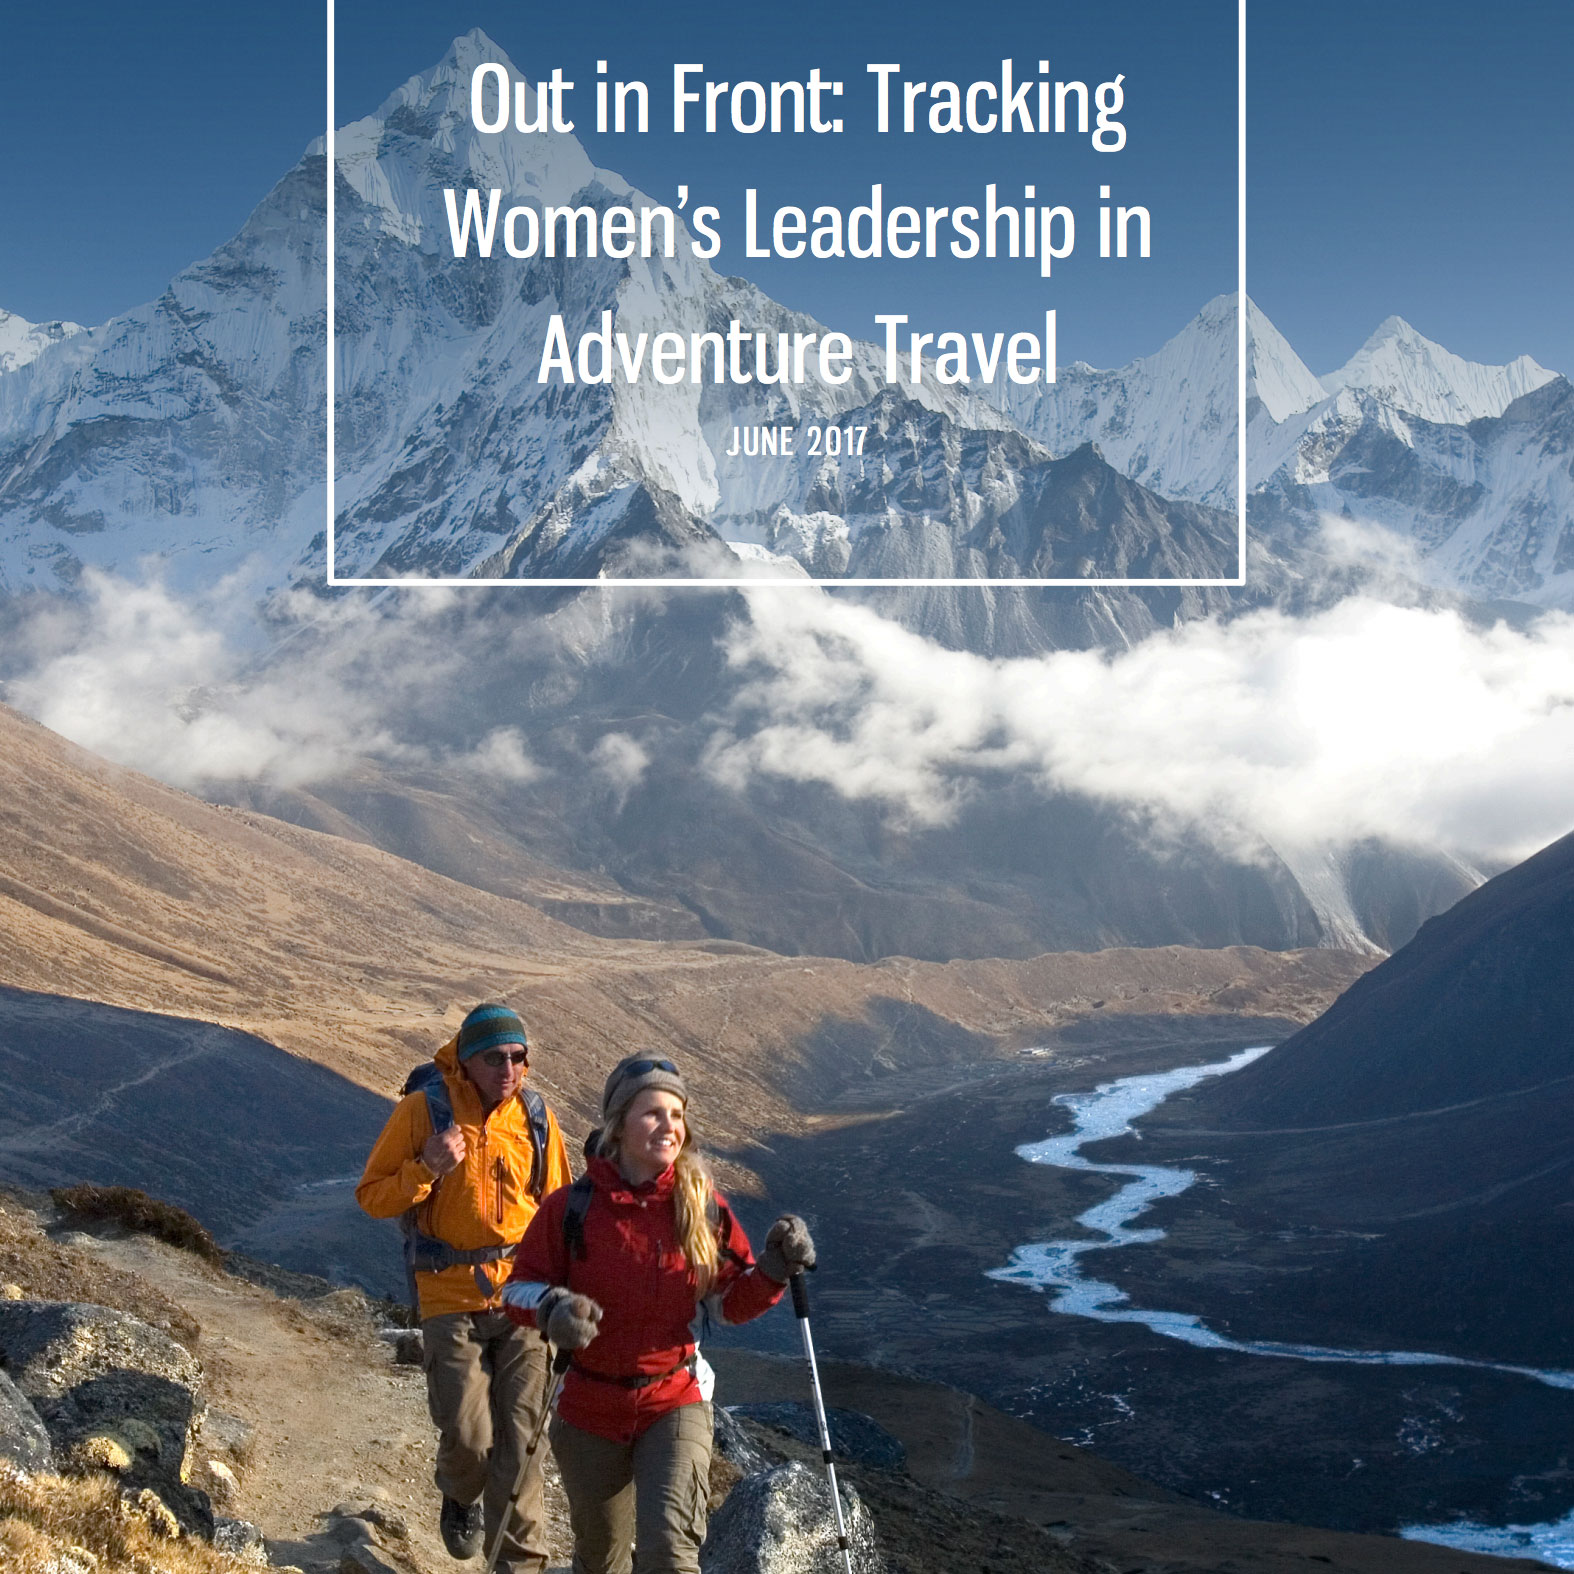 Adventure Travel: Out In Front: Tracking Women's Leadership In Adventure